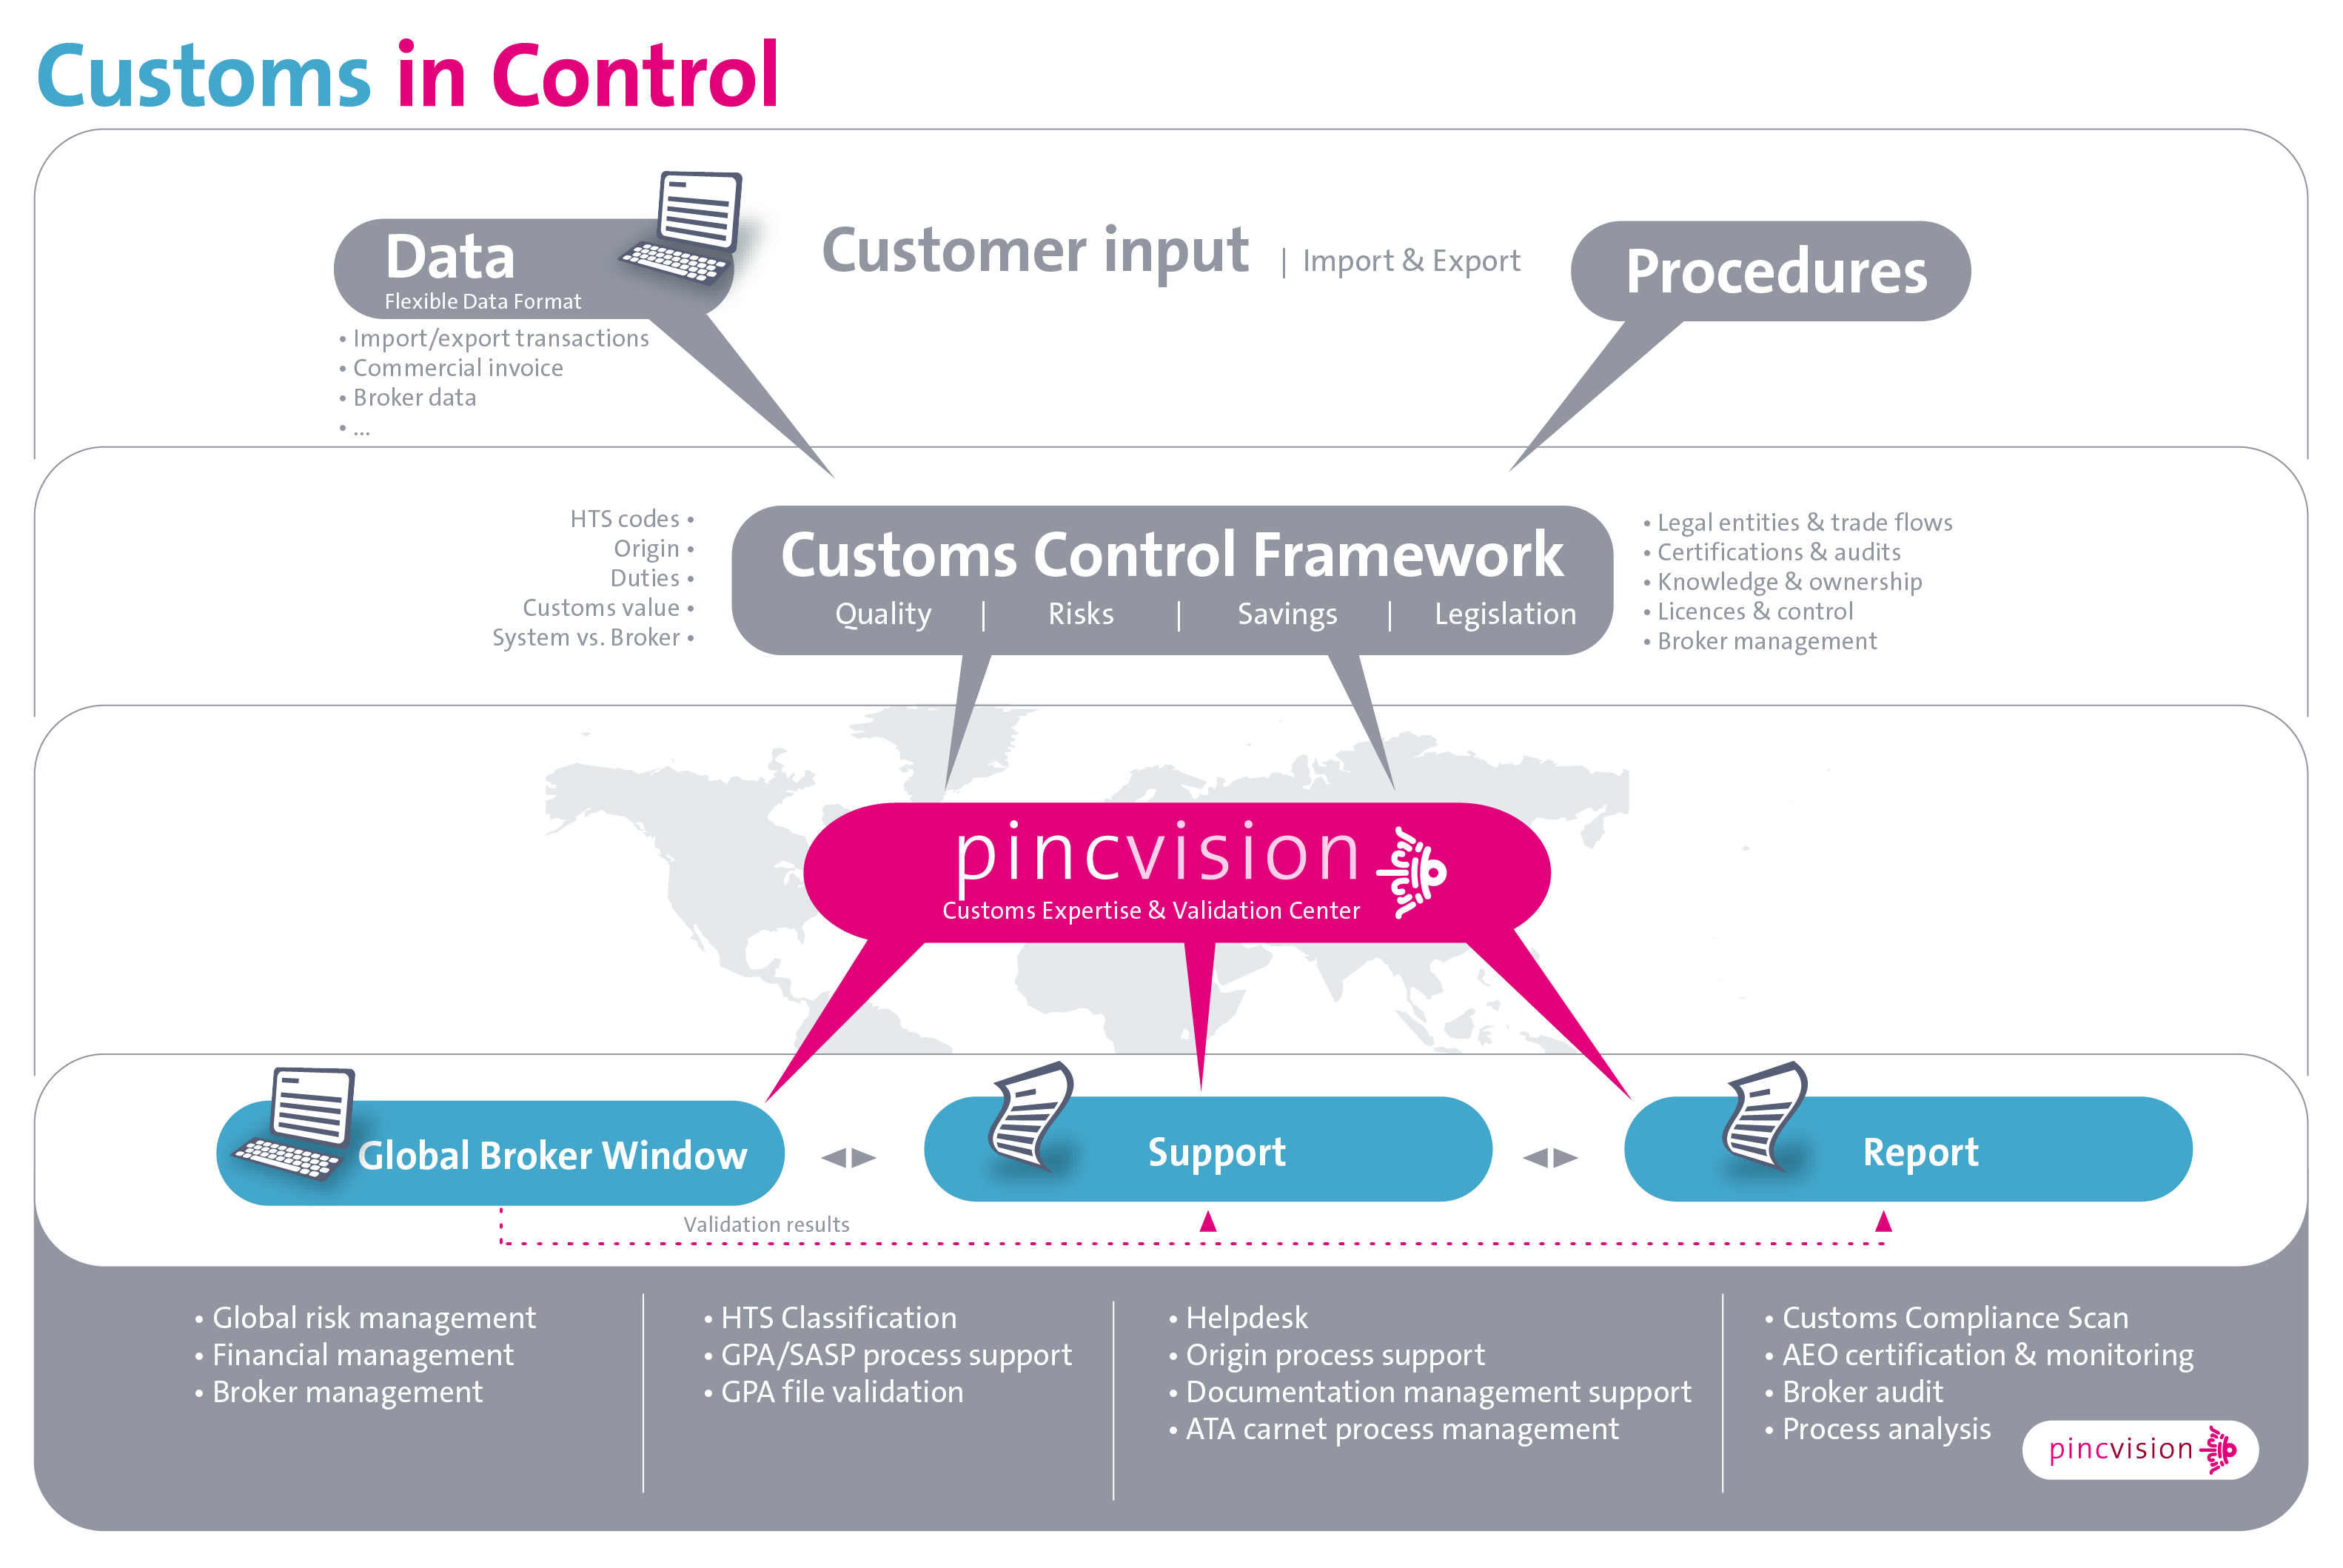 Pincvision-process-Customs-in-Control.png